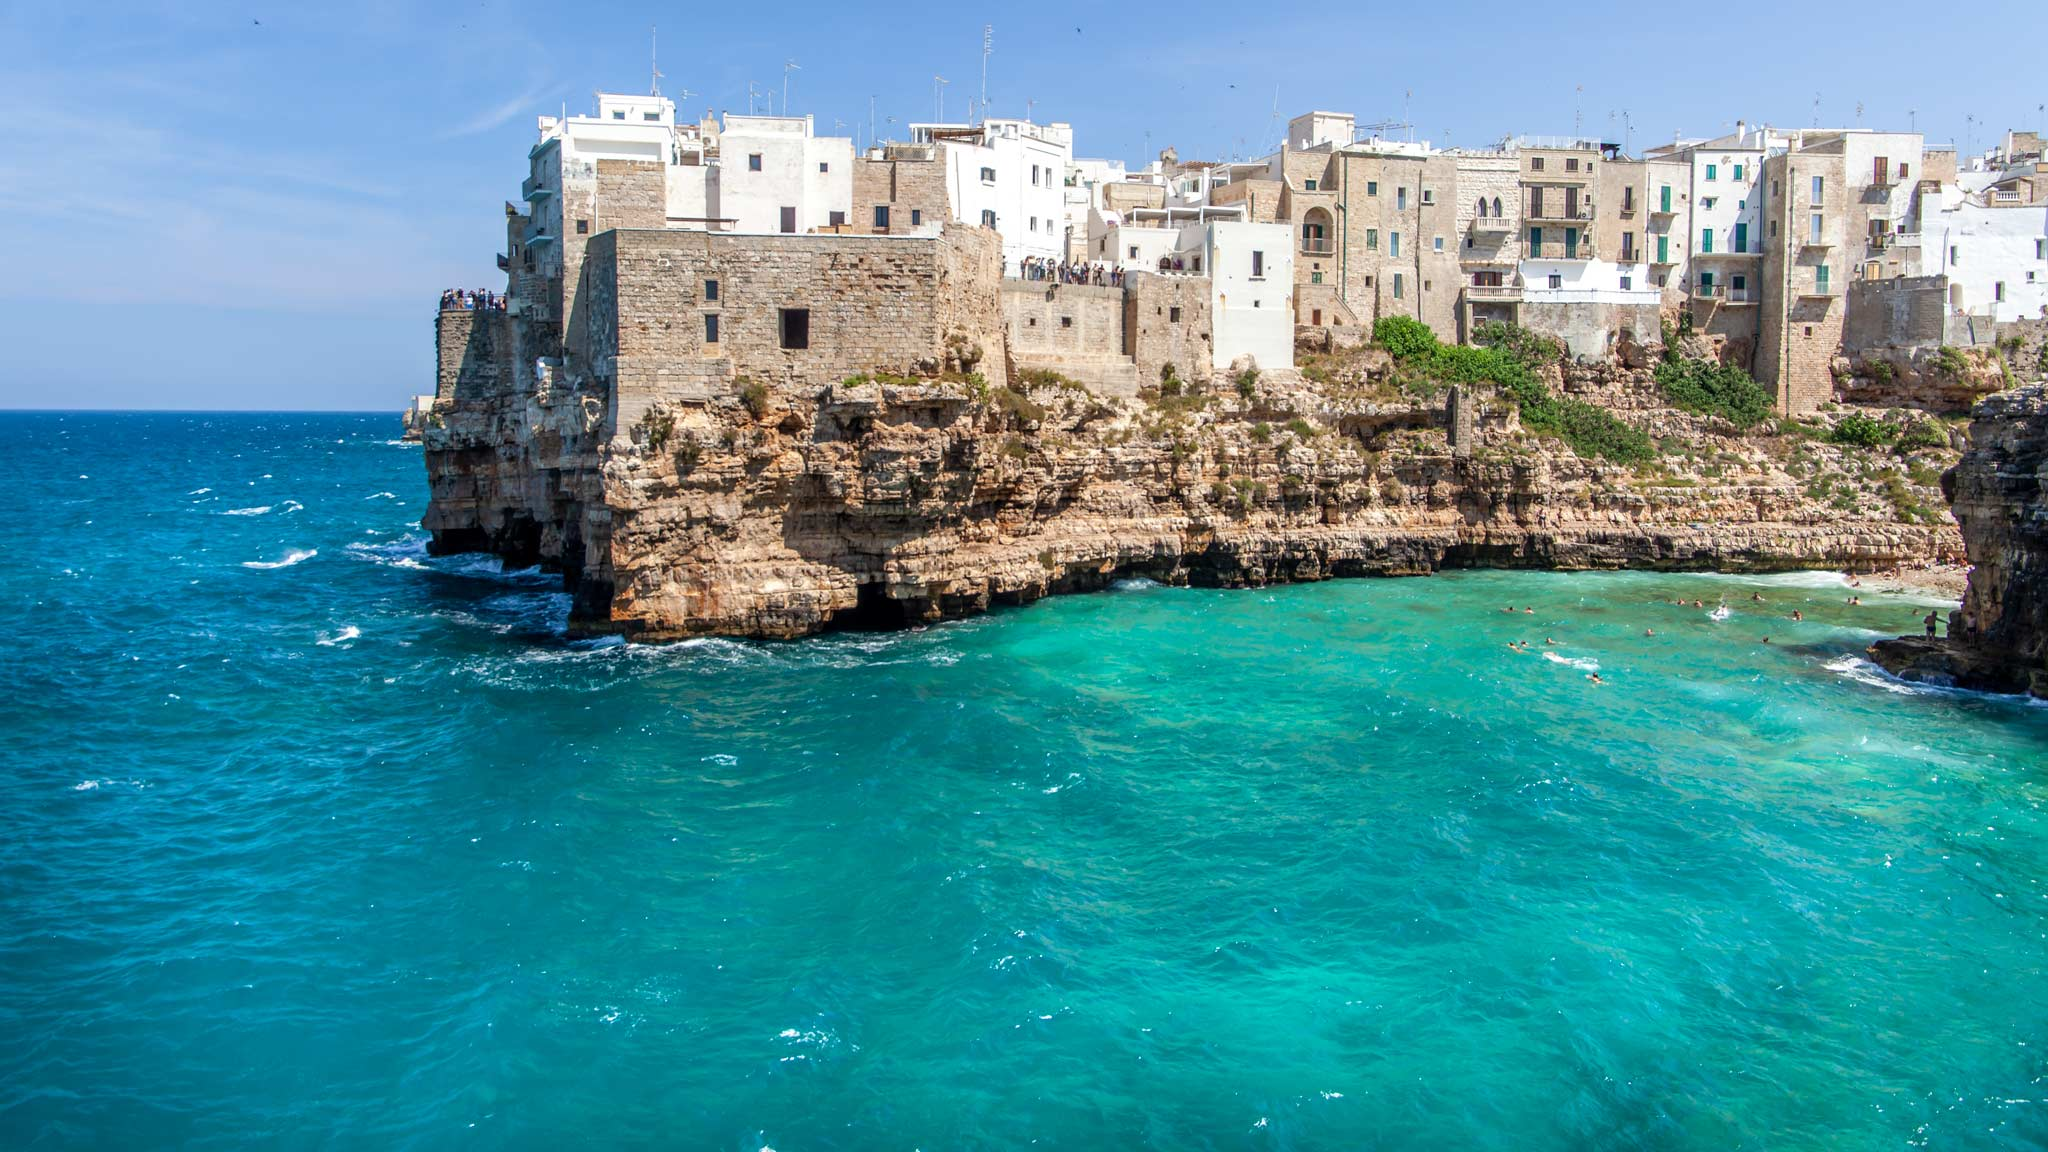 The white-washed cliff buildings stick out over the blue ocean of Polignano a Mare